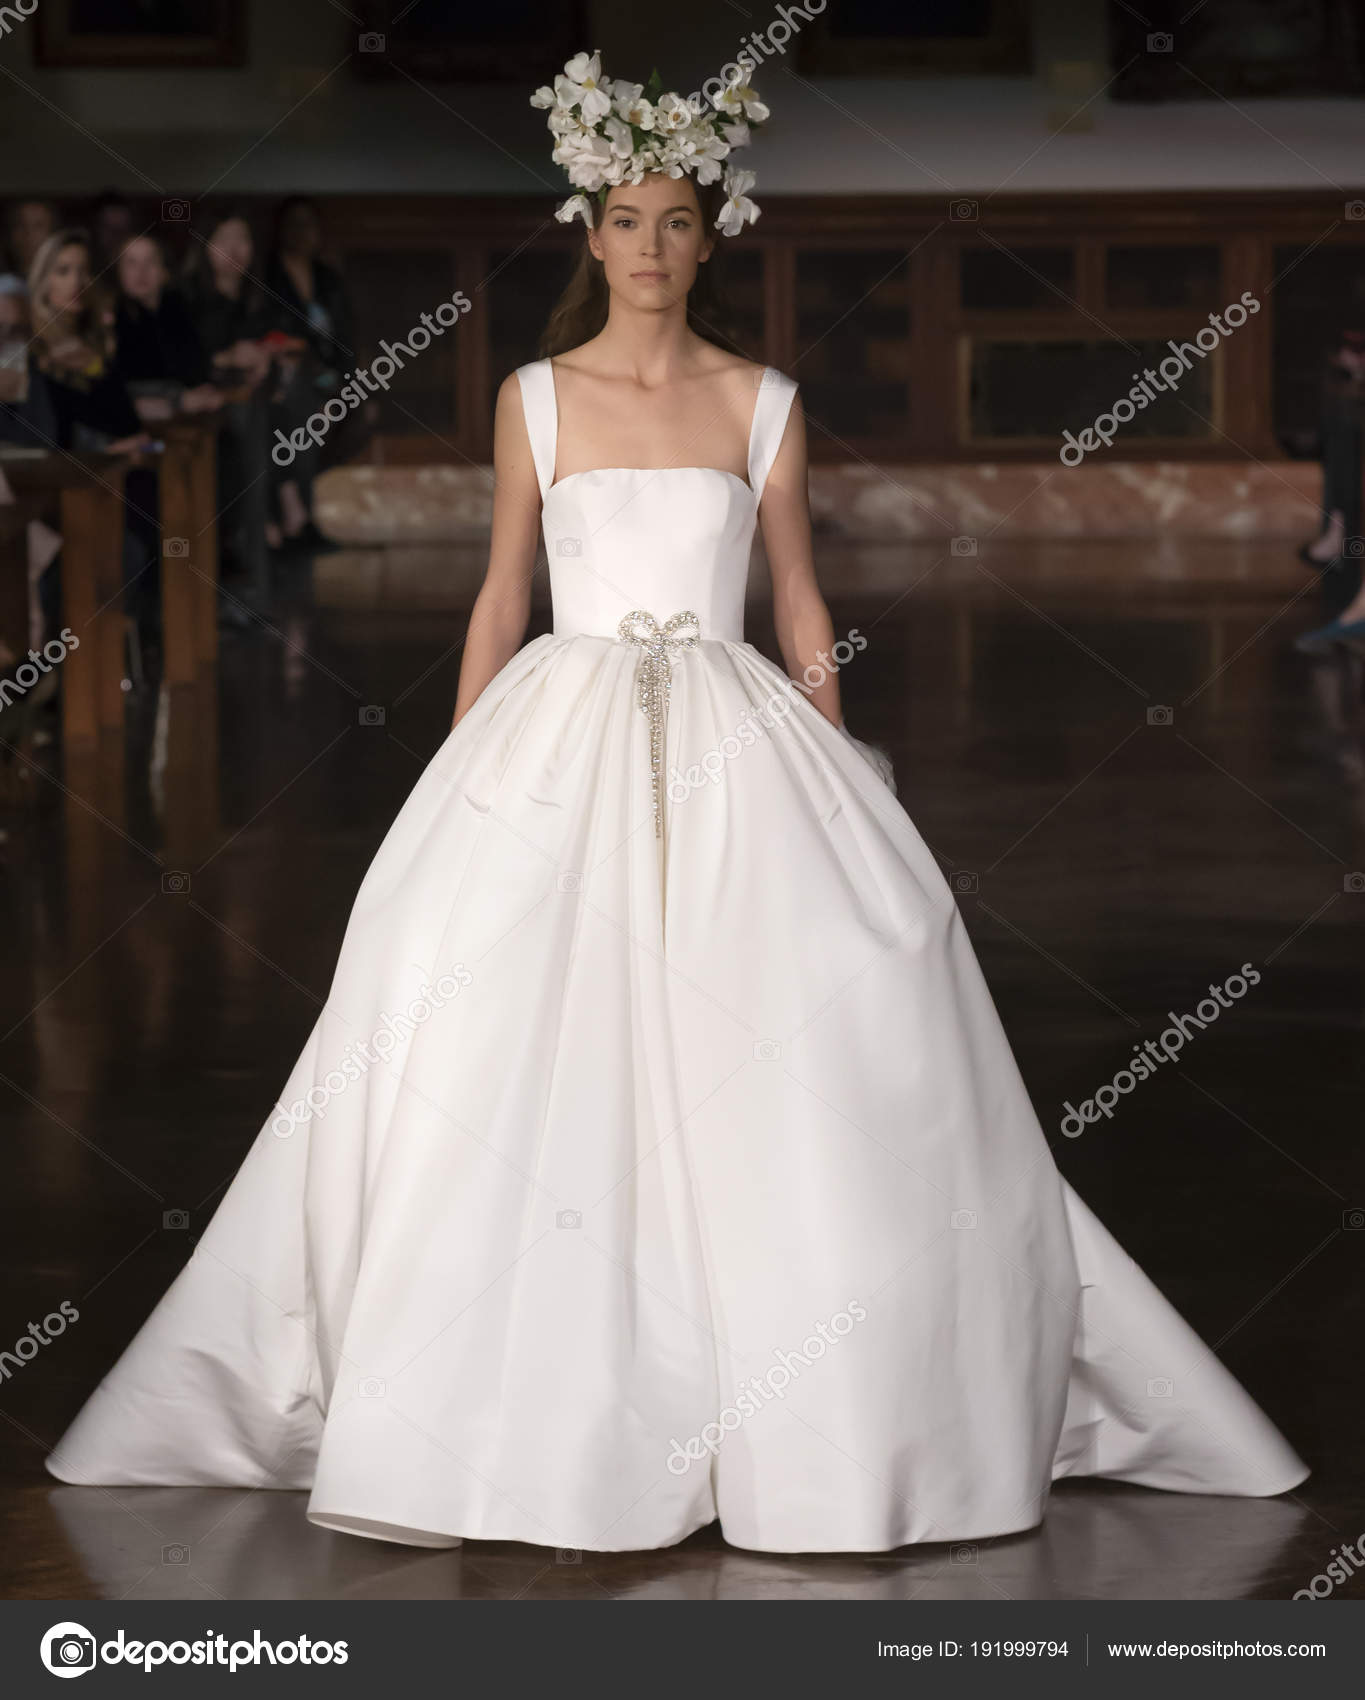 1ce3dd64ade2 NEW YORK, NY - April 12, 2018: A model walks the runway at the Reem Acra  Bridal Spring 2019 Collection Runway Show during NY Fashion Week Bridal —  Photo by ...